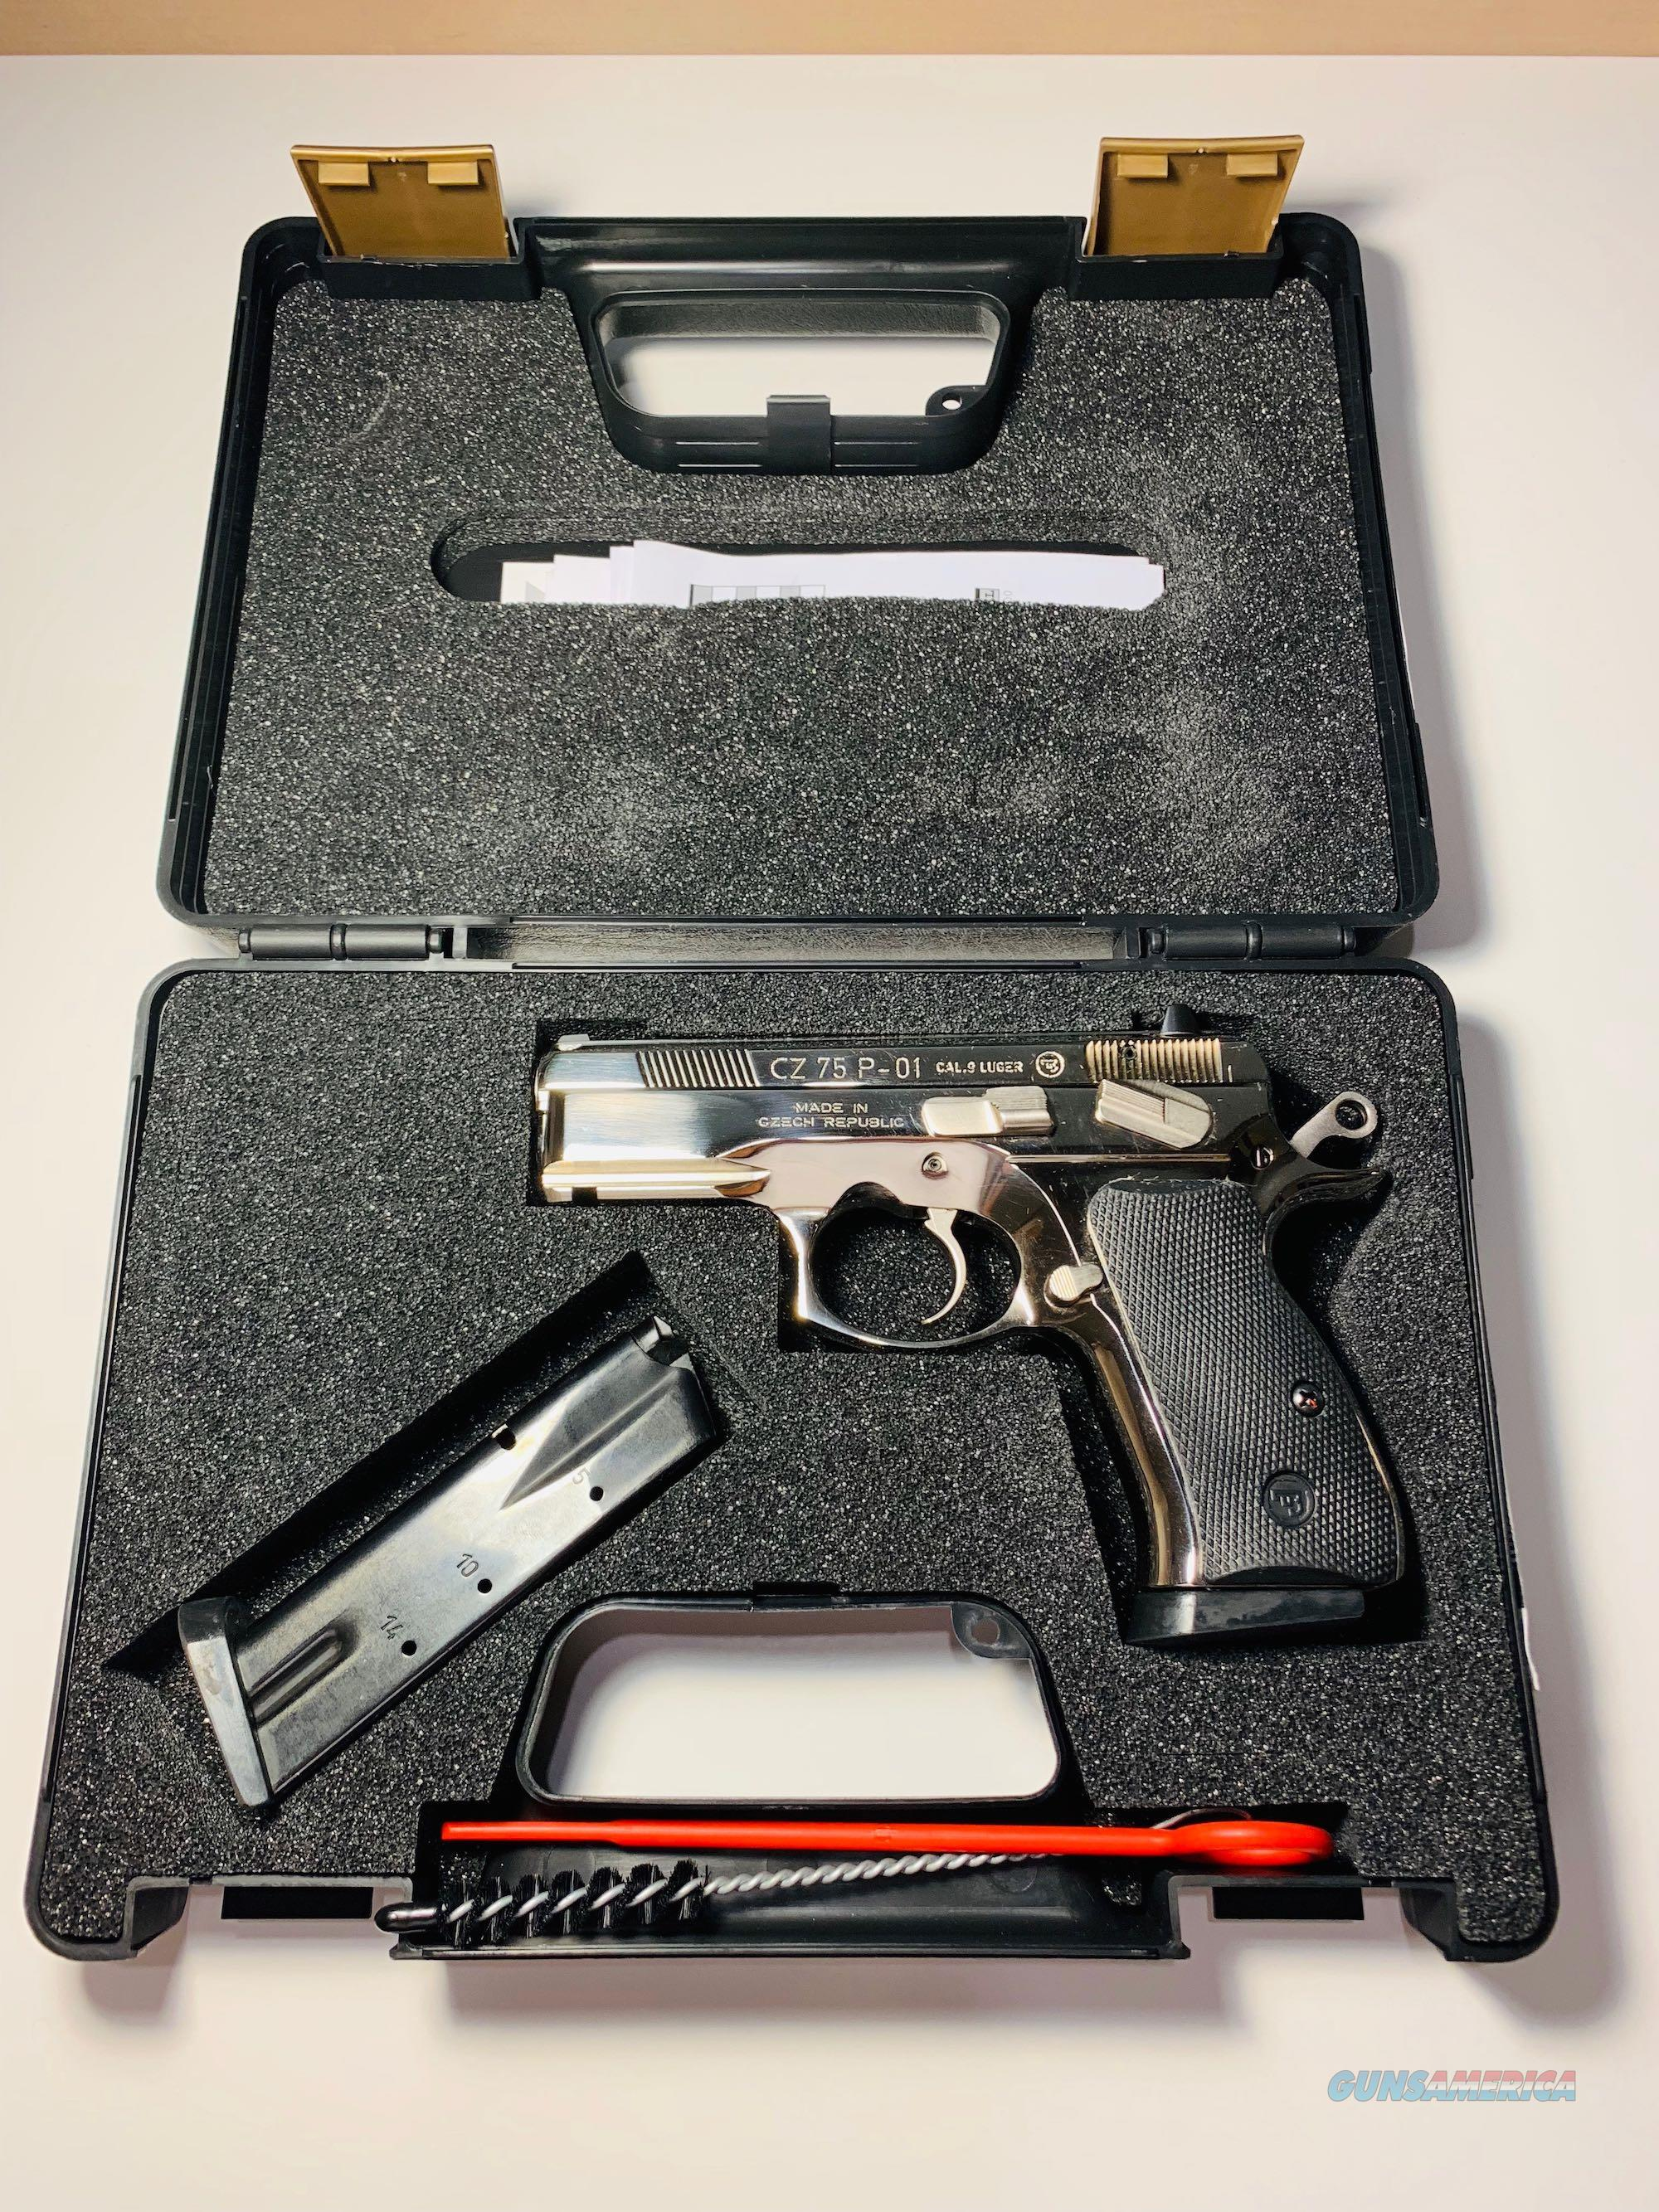 CZ 75 P-01 Bright Polished Stainless Steel - Limited Run Only 150 Imported  Guns > Pistols > CZ Pistols